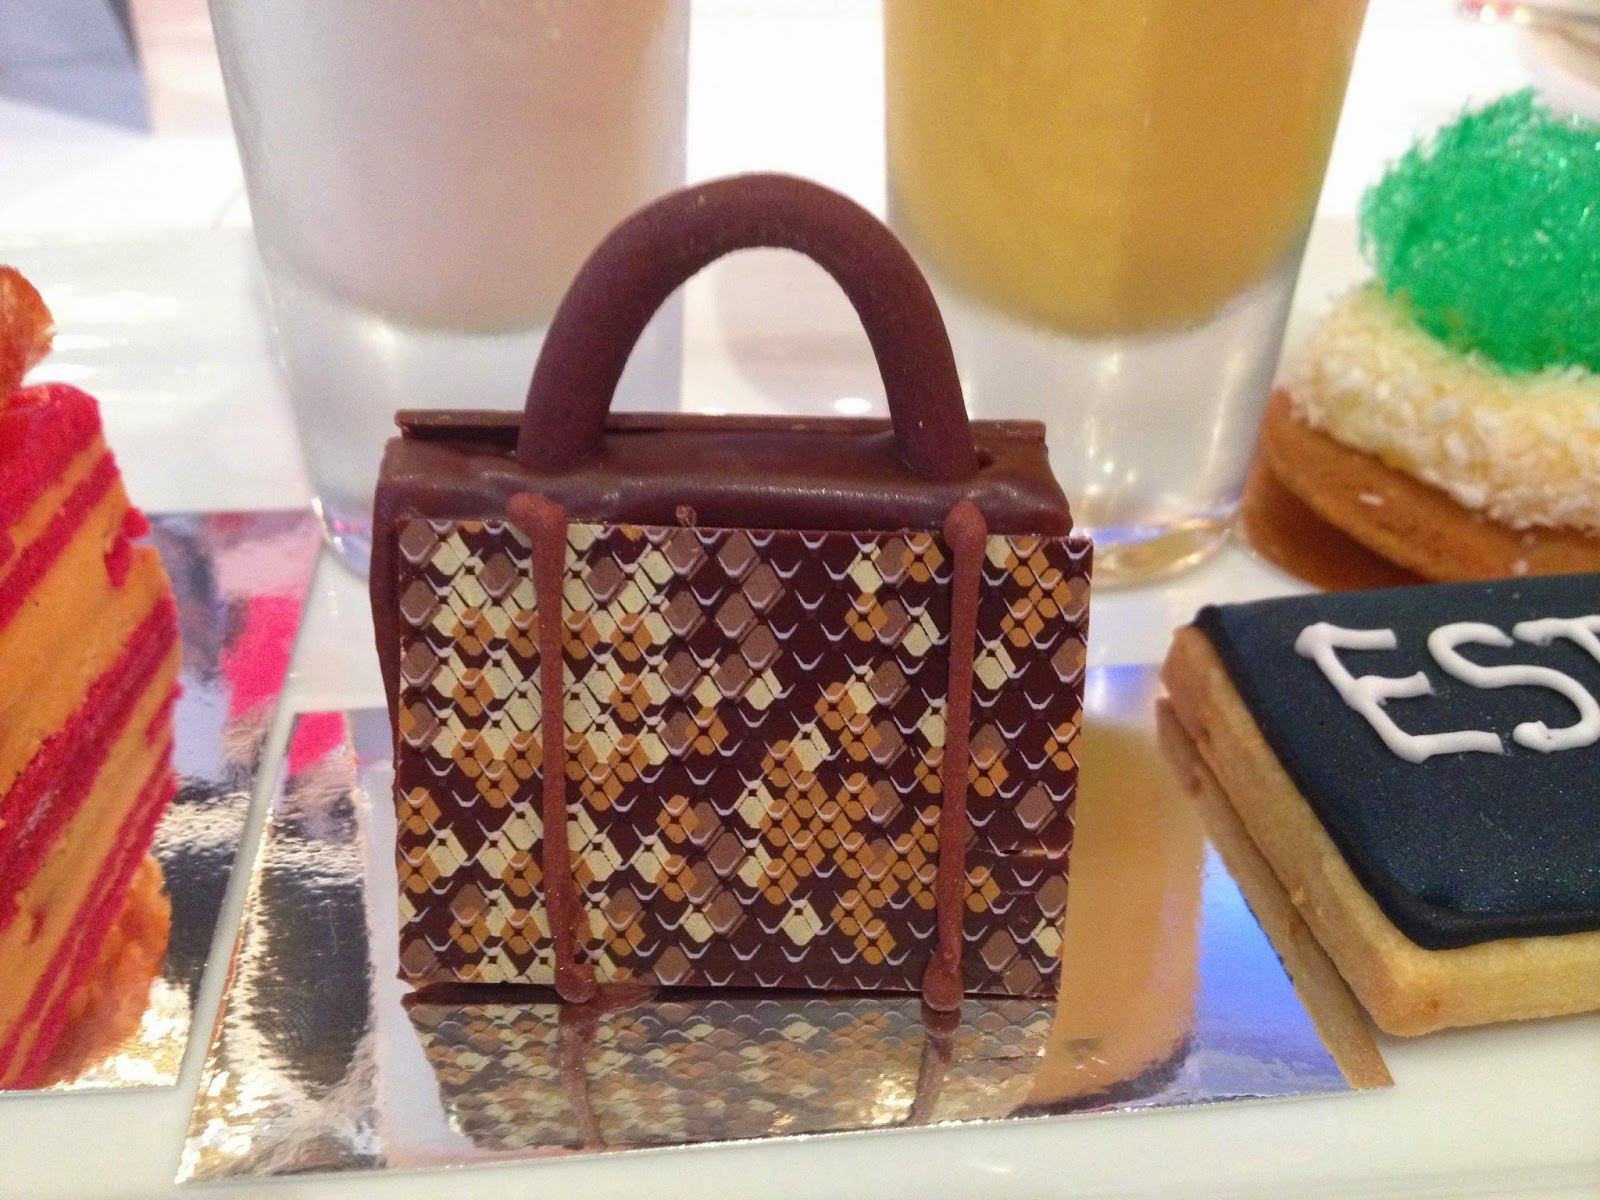 Mui Mui handbag review afternoon tea